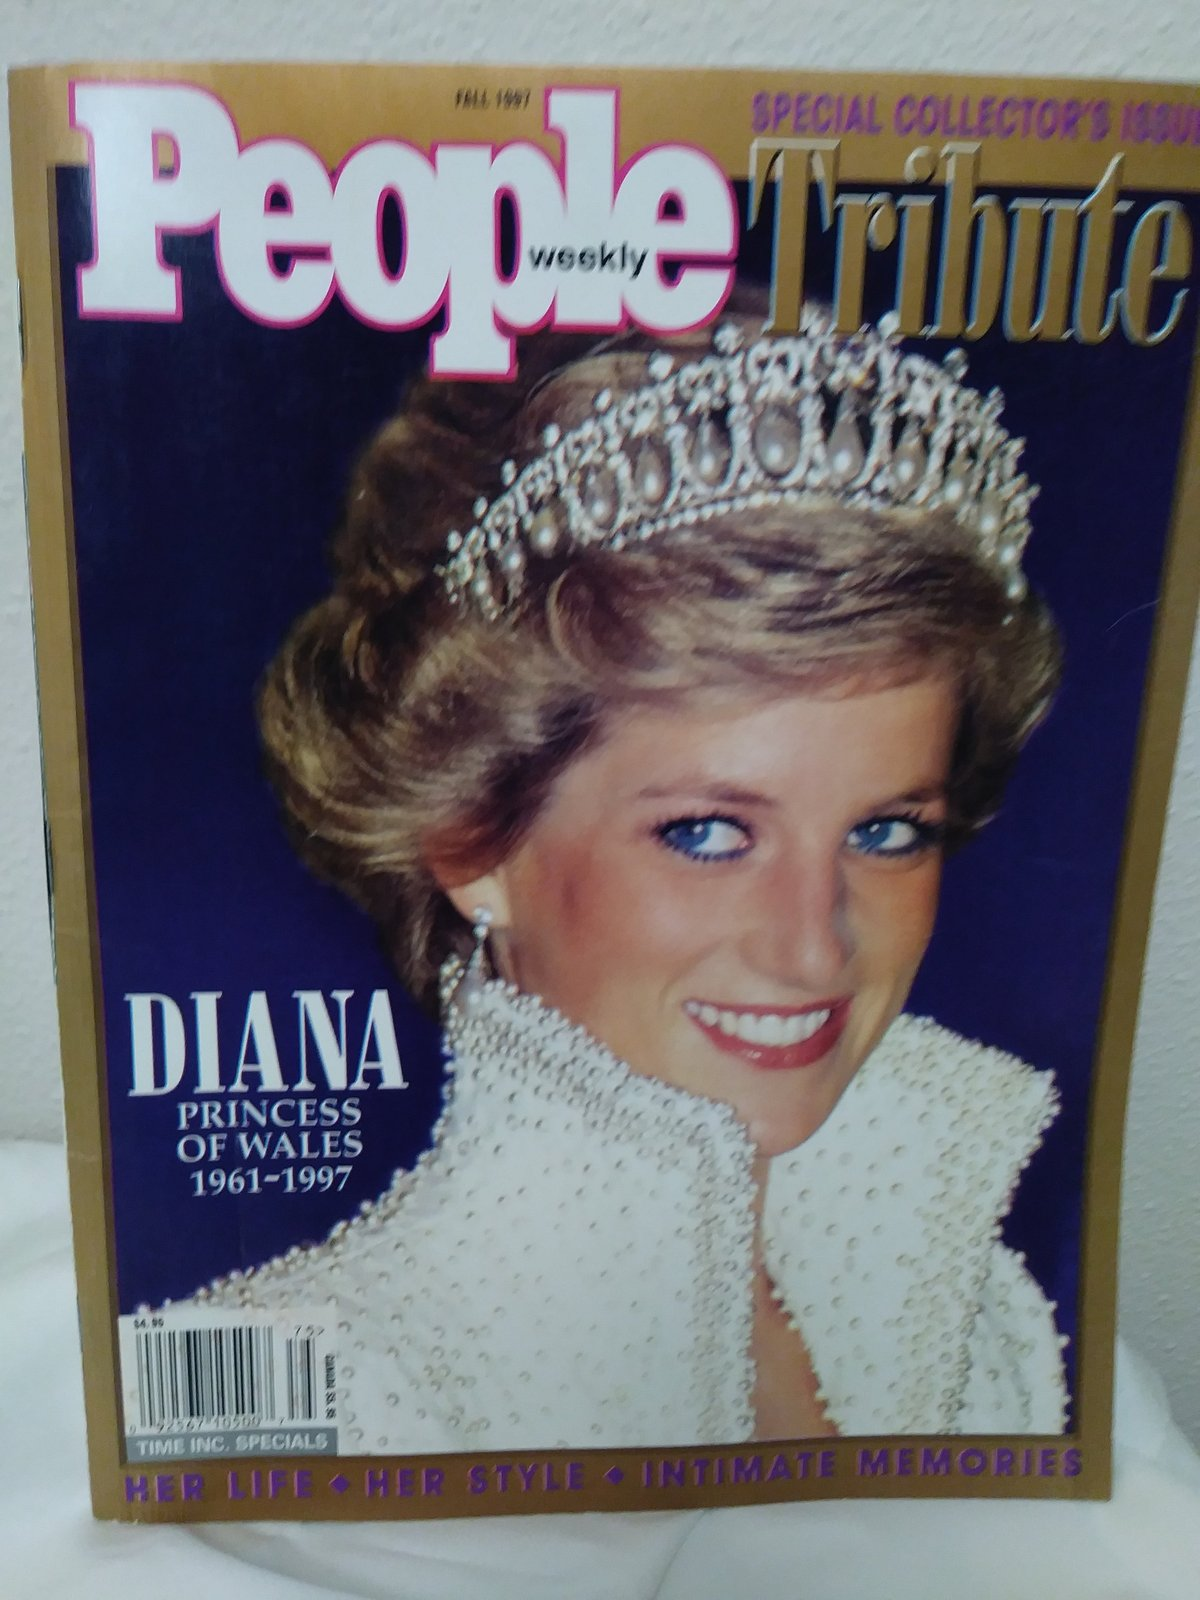 People weekly Tribute Fall 1997 Diana Princess of Wales 1961-1997 Magazine